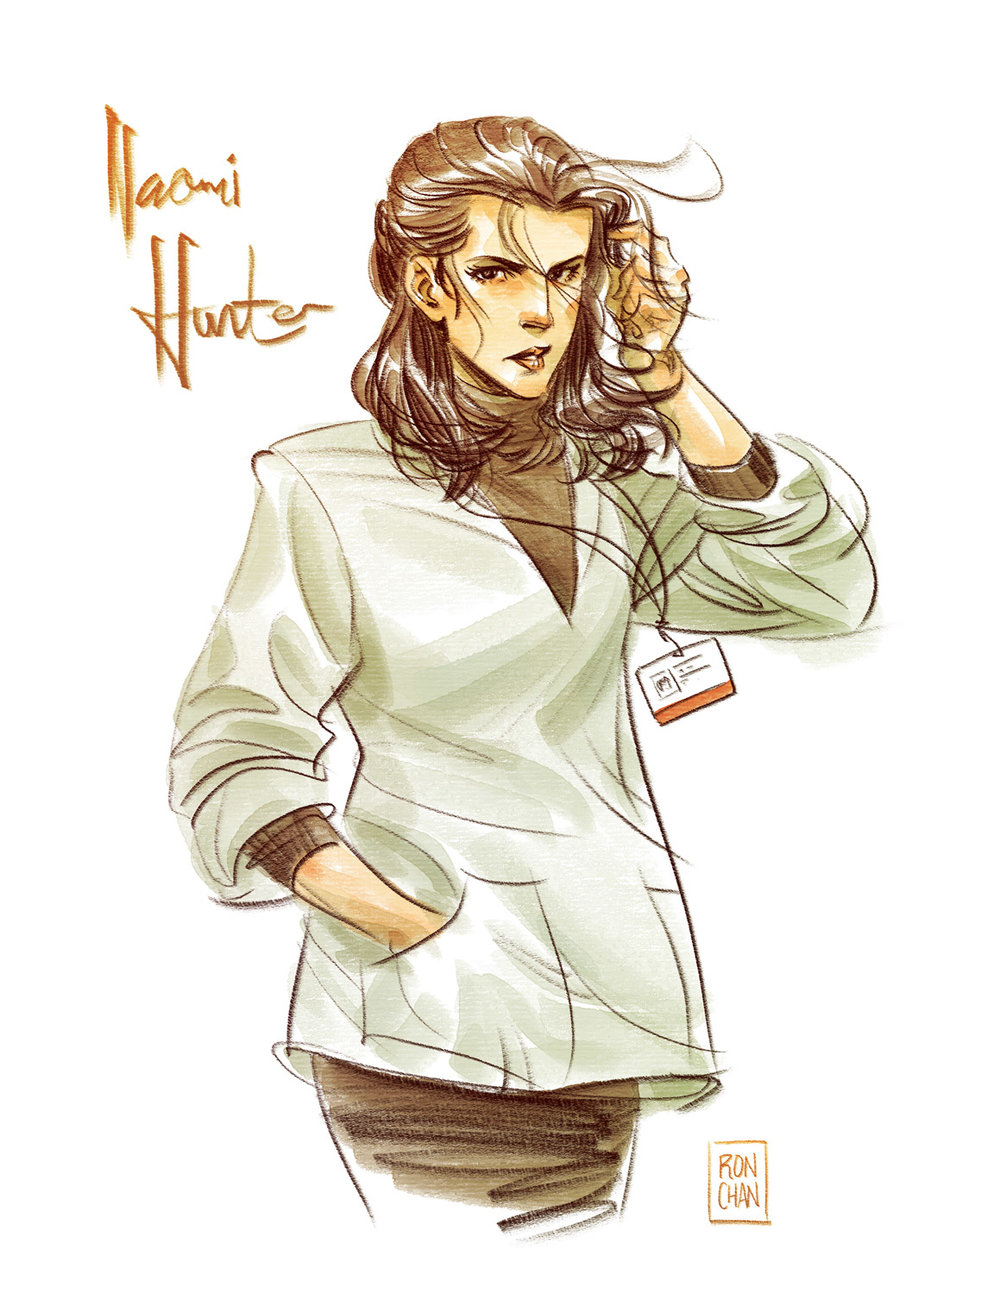 mgs_naomi_hunter_web.jpg